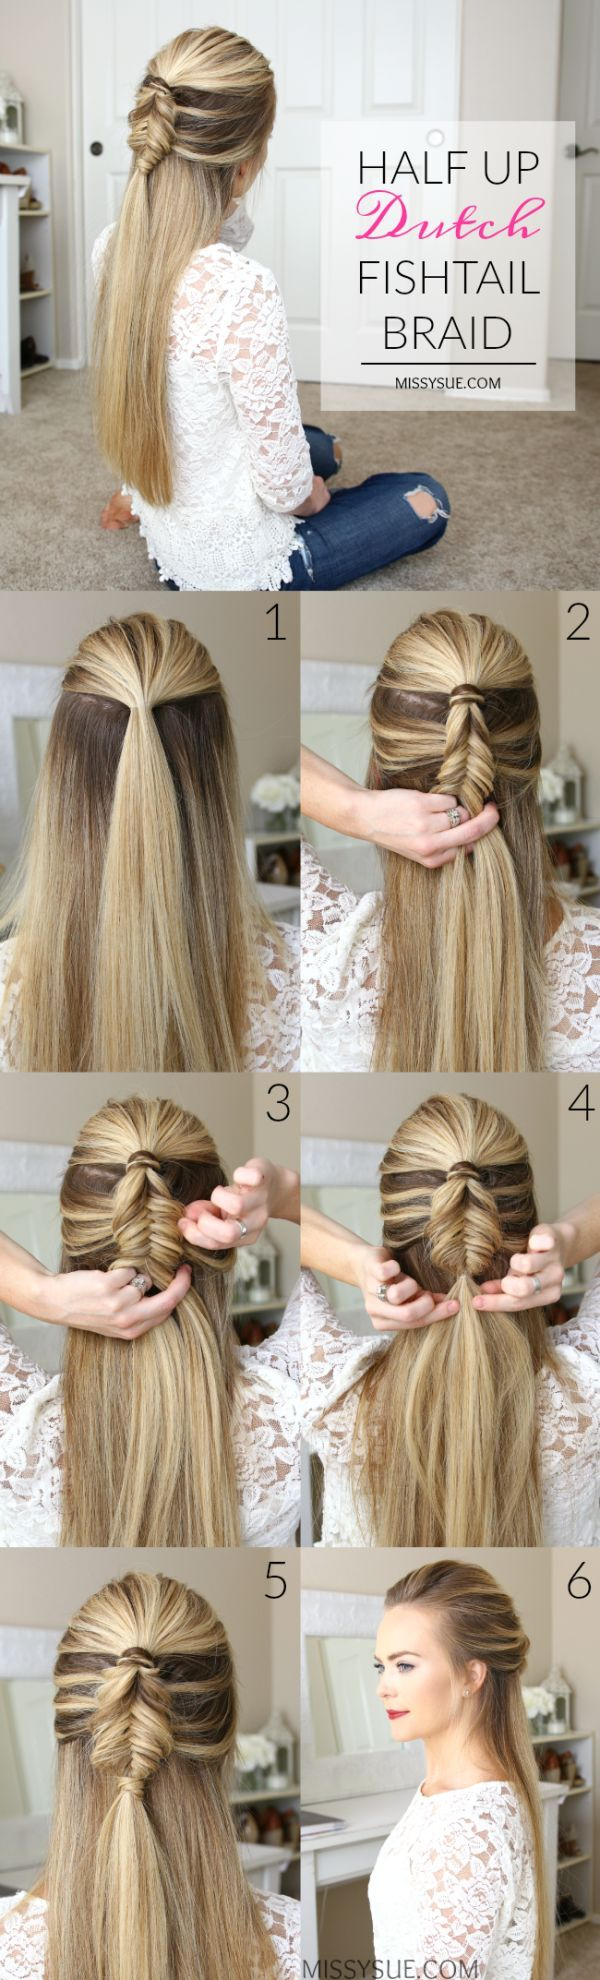 Ha Hair Accessories For Apostolic Long Hair - Half up dutch fishtail braid hairstyle tutorial